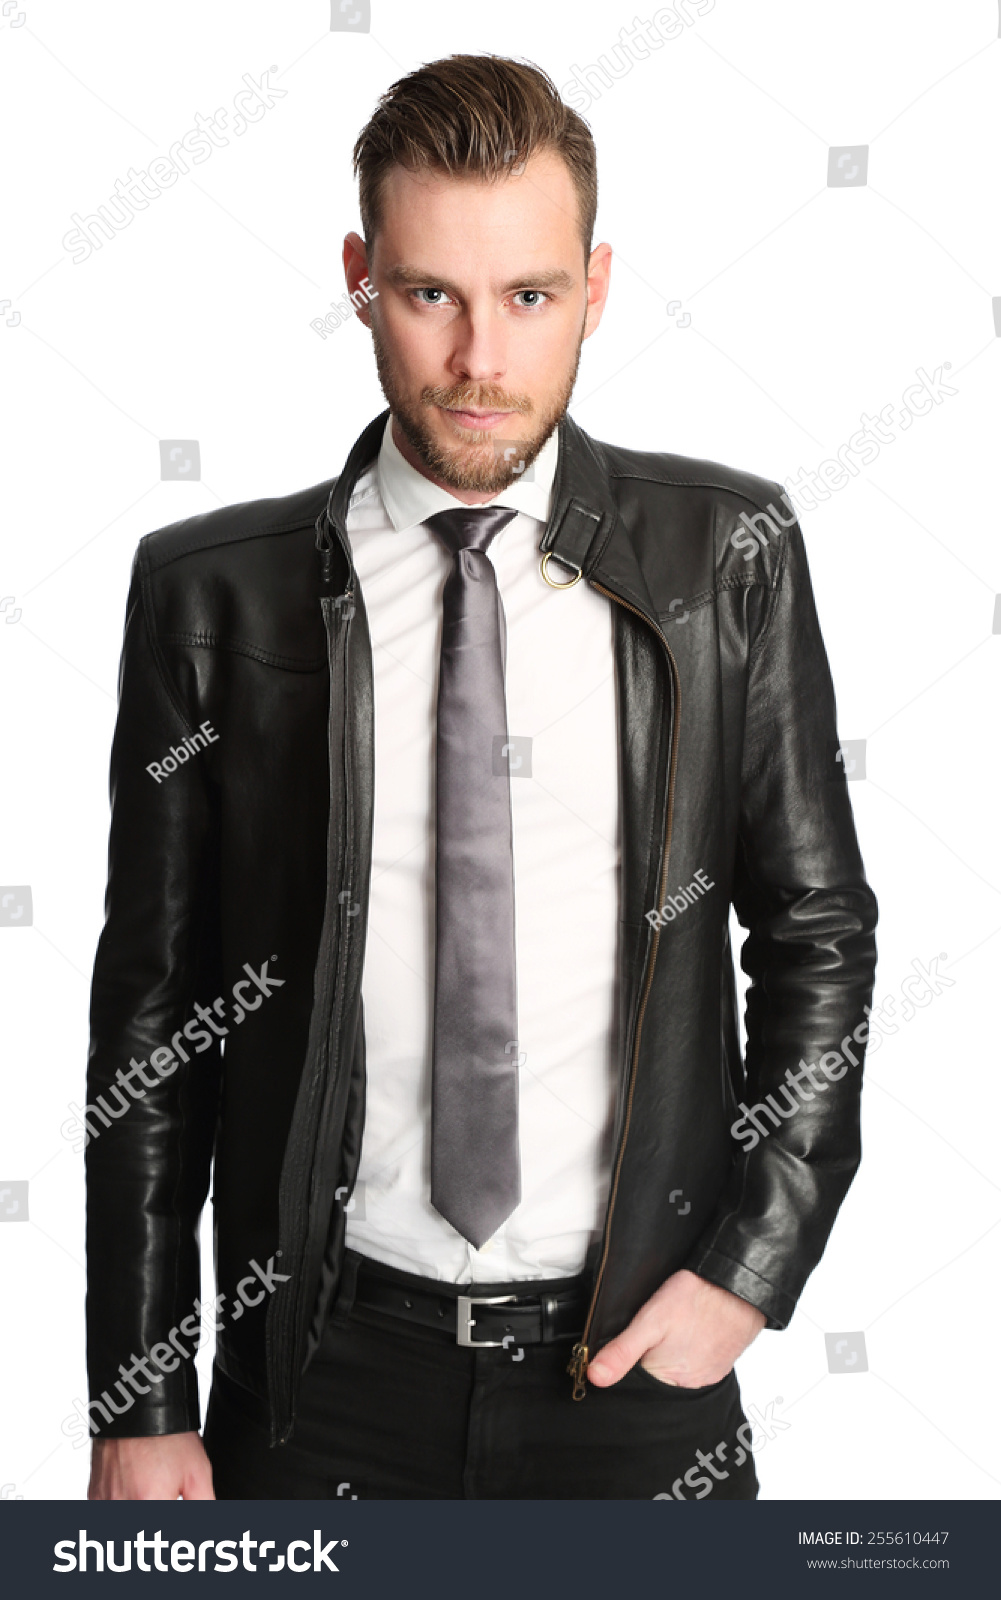 Leather jacket with shirt and tie